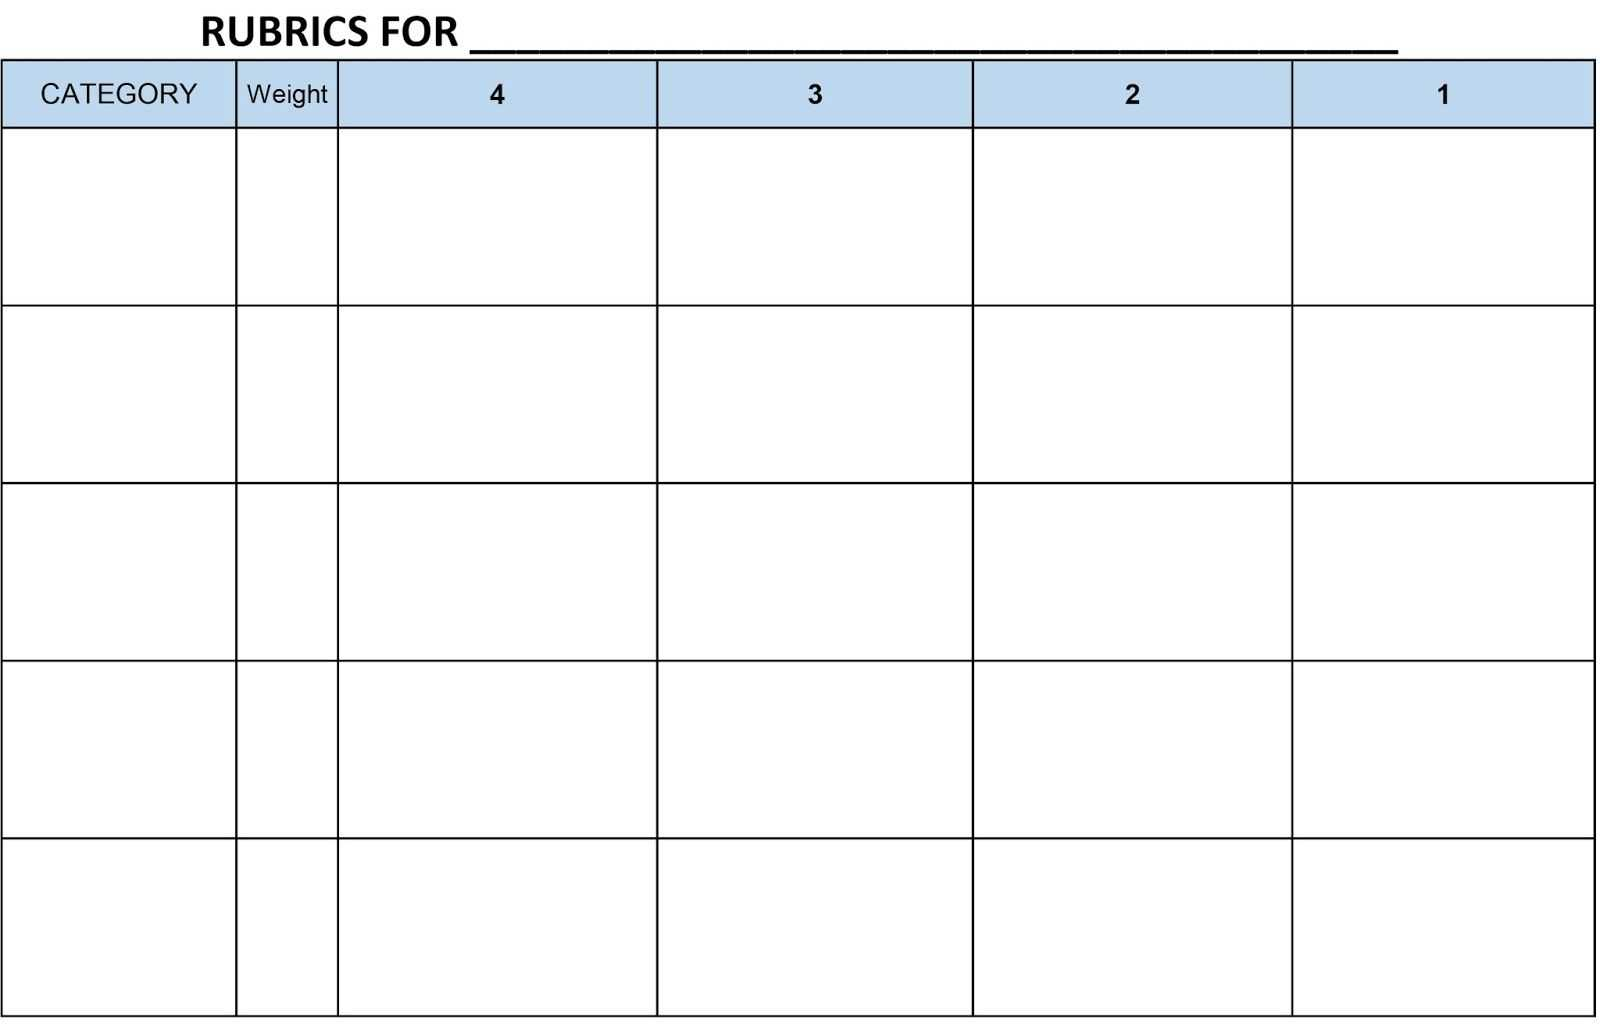 Image Result For Blank Rubric Template Editable | Rubrics with regard to Blank Rubric Template